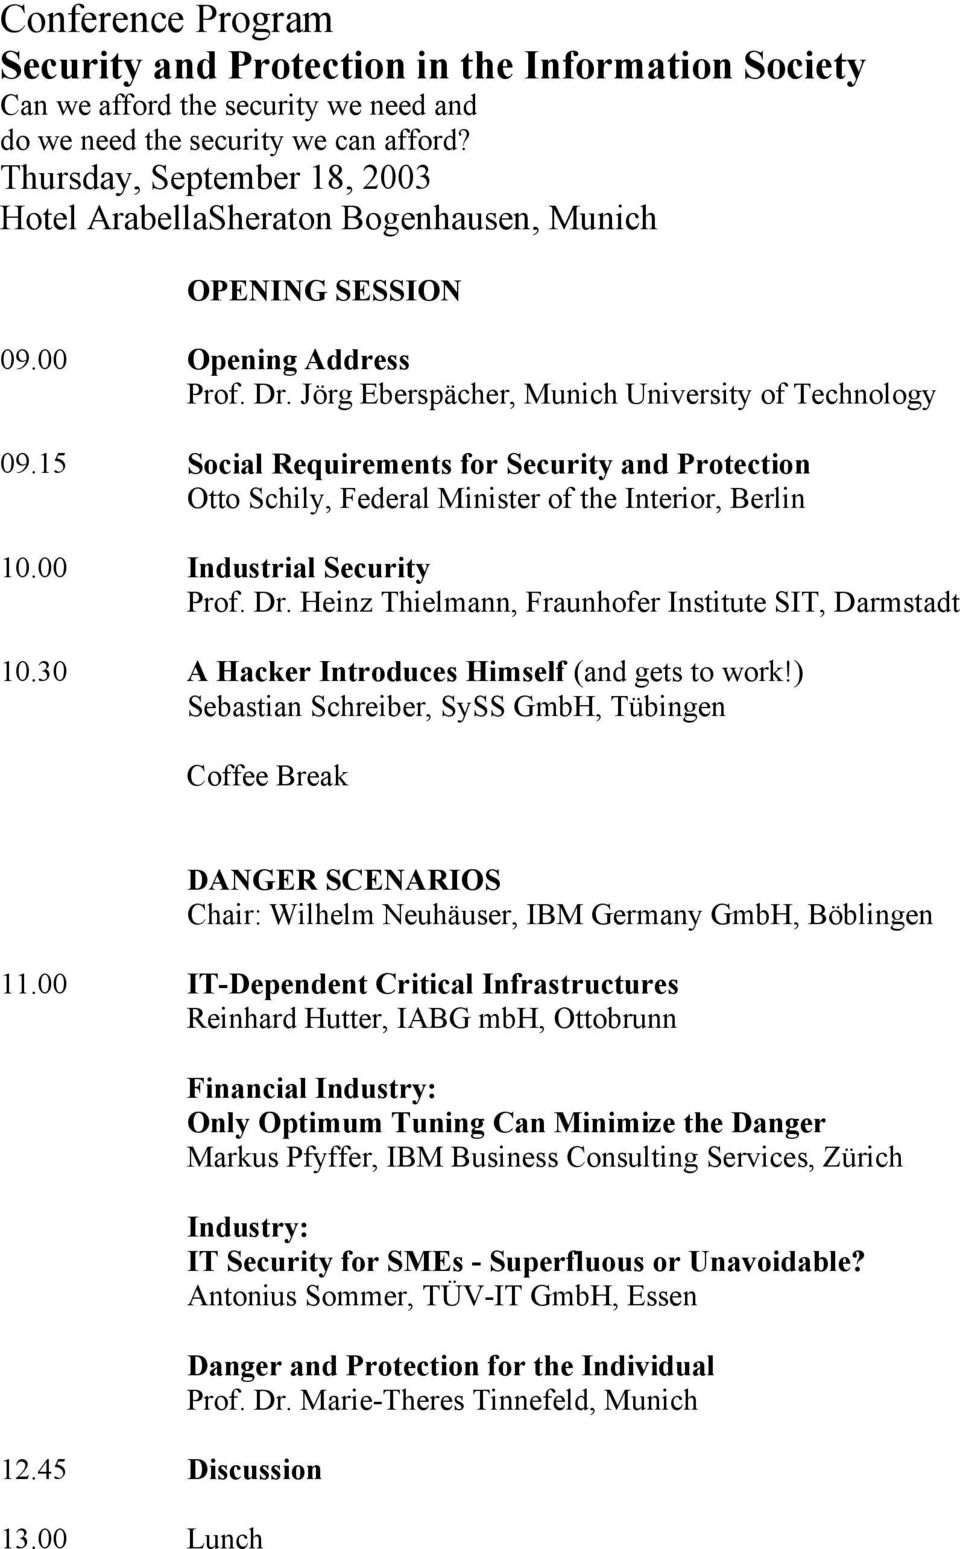 15 Social Requirements for Security and Protection Otto Schily, Federal Minister of the Interior, Berlin 10.00 Industrial Security Prof. Dr. Heinz Thielmann, Fraunhofer Institute SIT, Darmstadt 10.